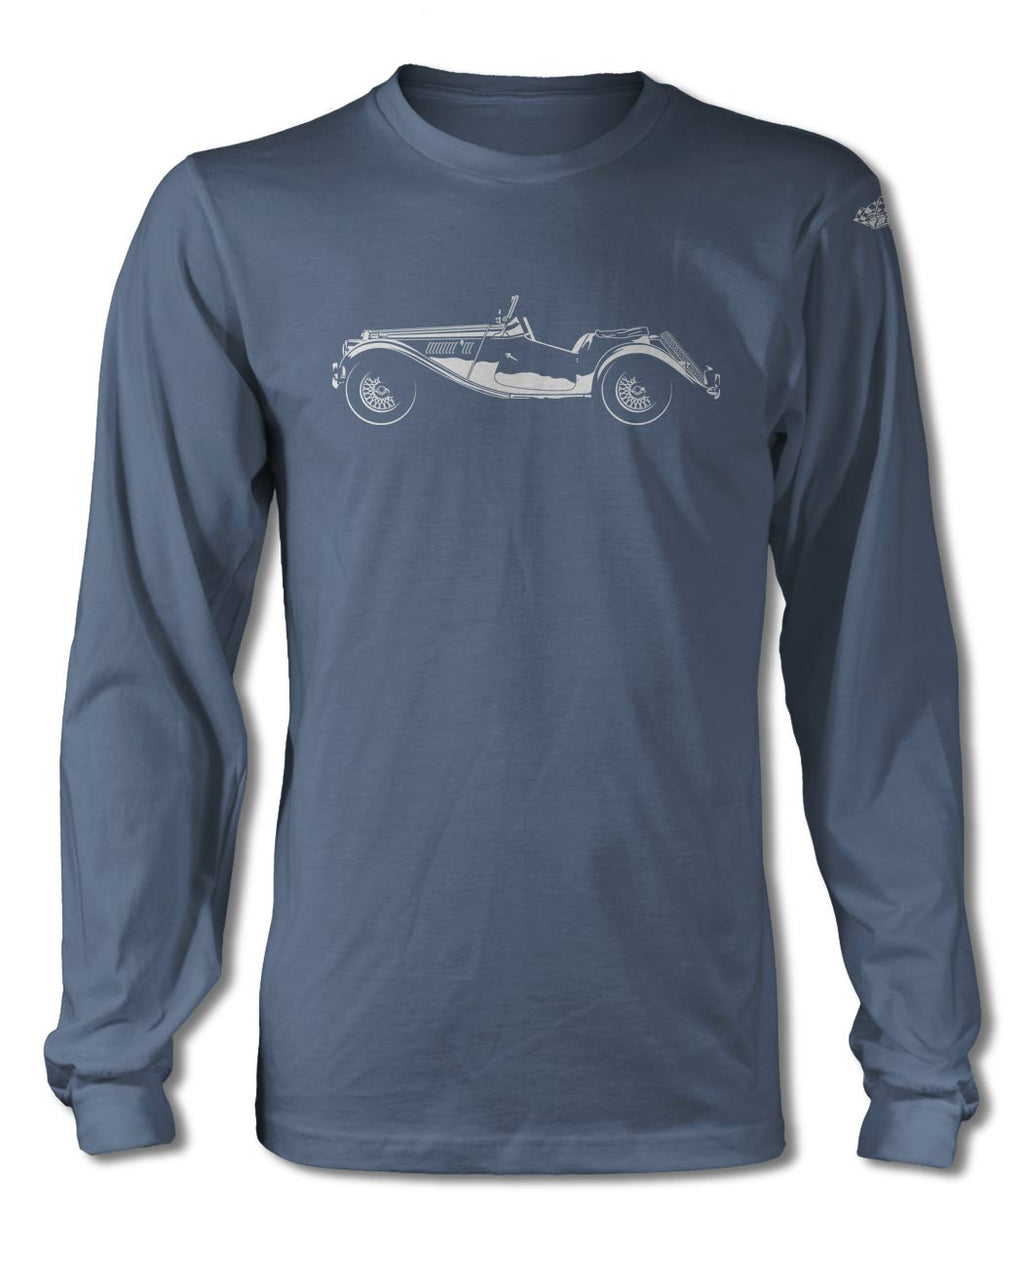 MG TF Roadster T-Shirt - Long Sleeves - Side View